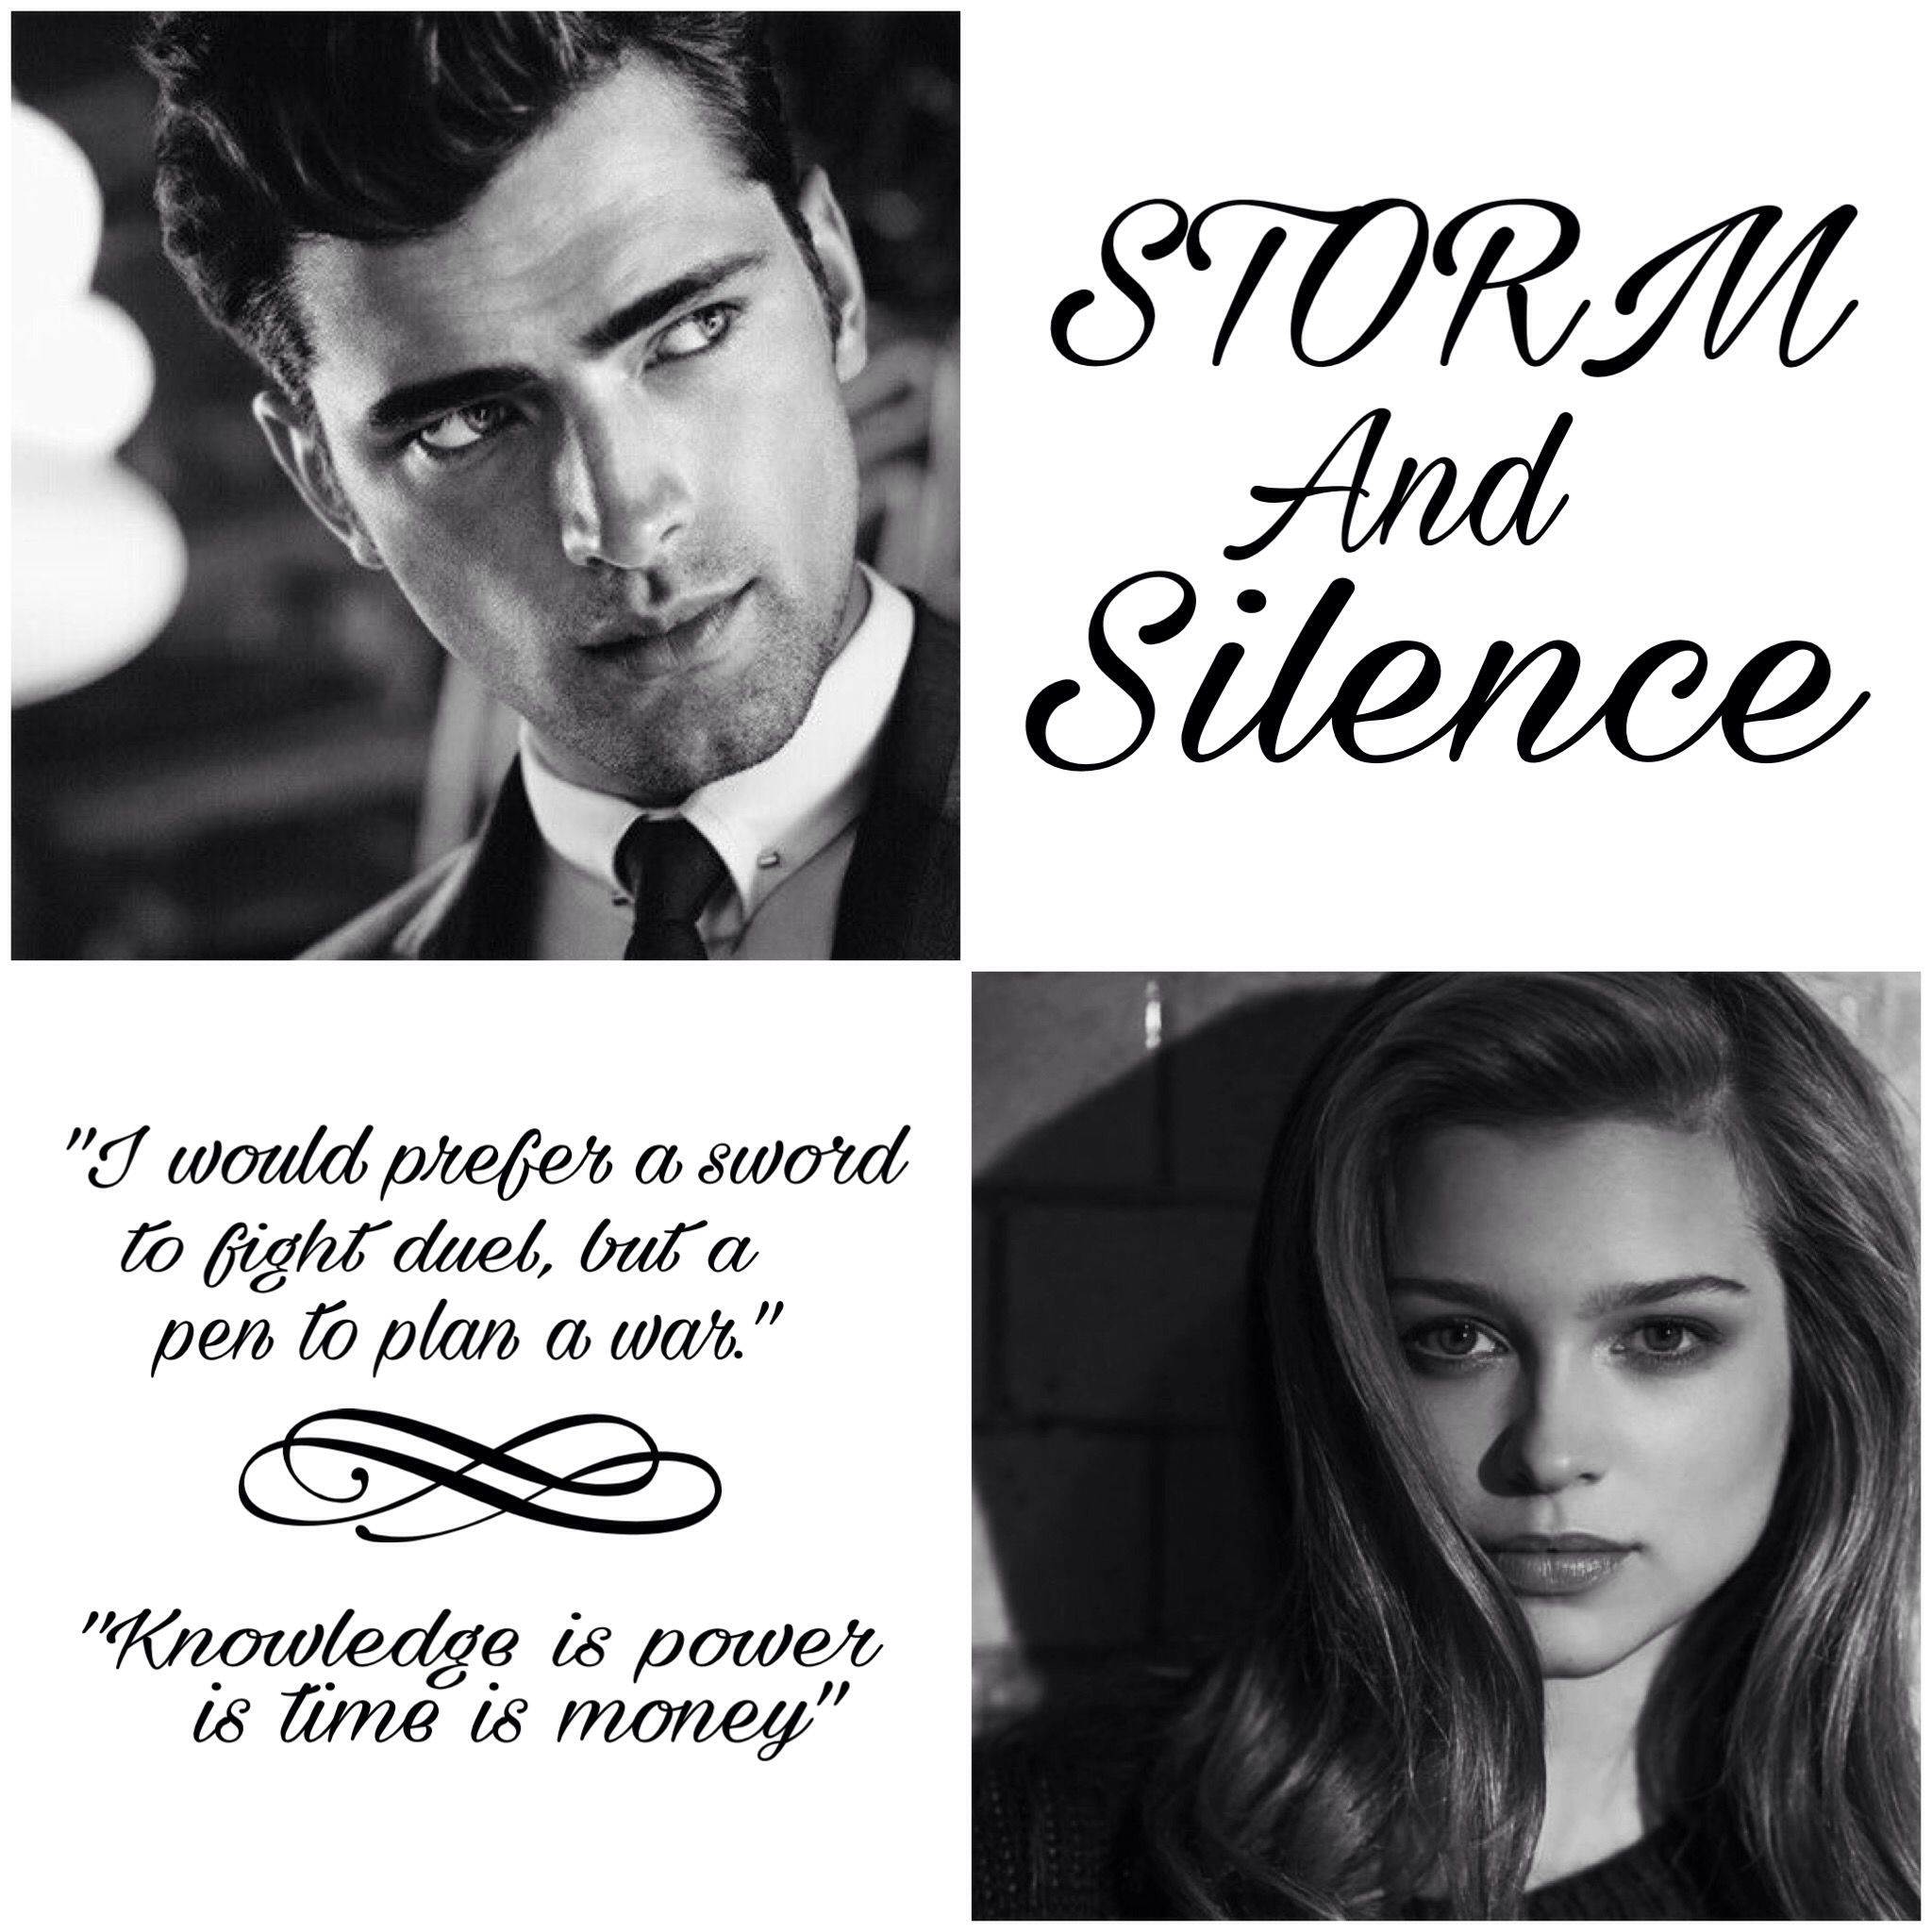 Storm And Silence By Robert Thier On Wattpad Storm And Silence Wattpad Quotes Silence Quotes